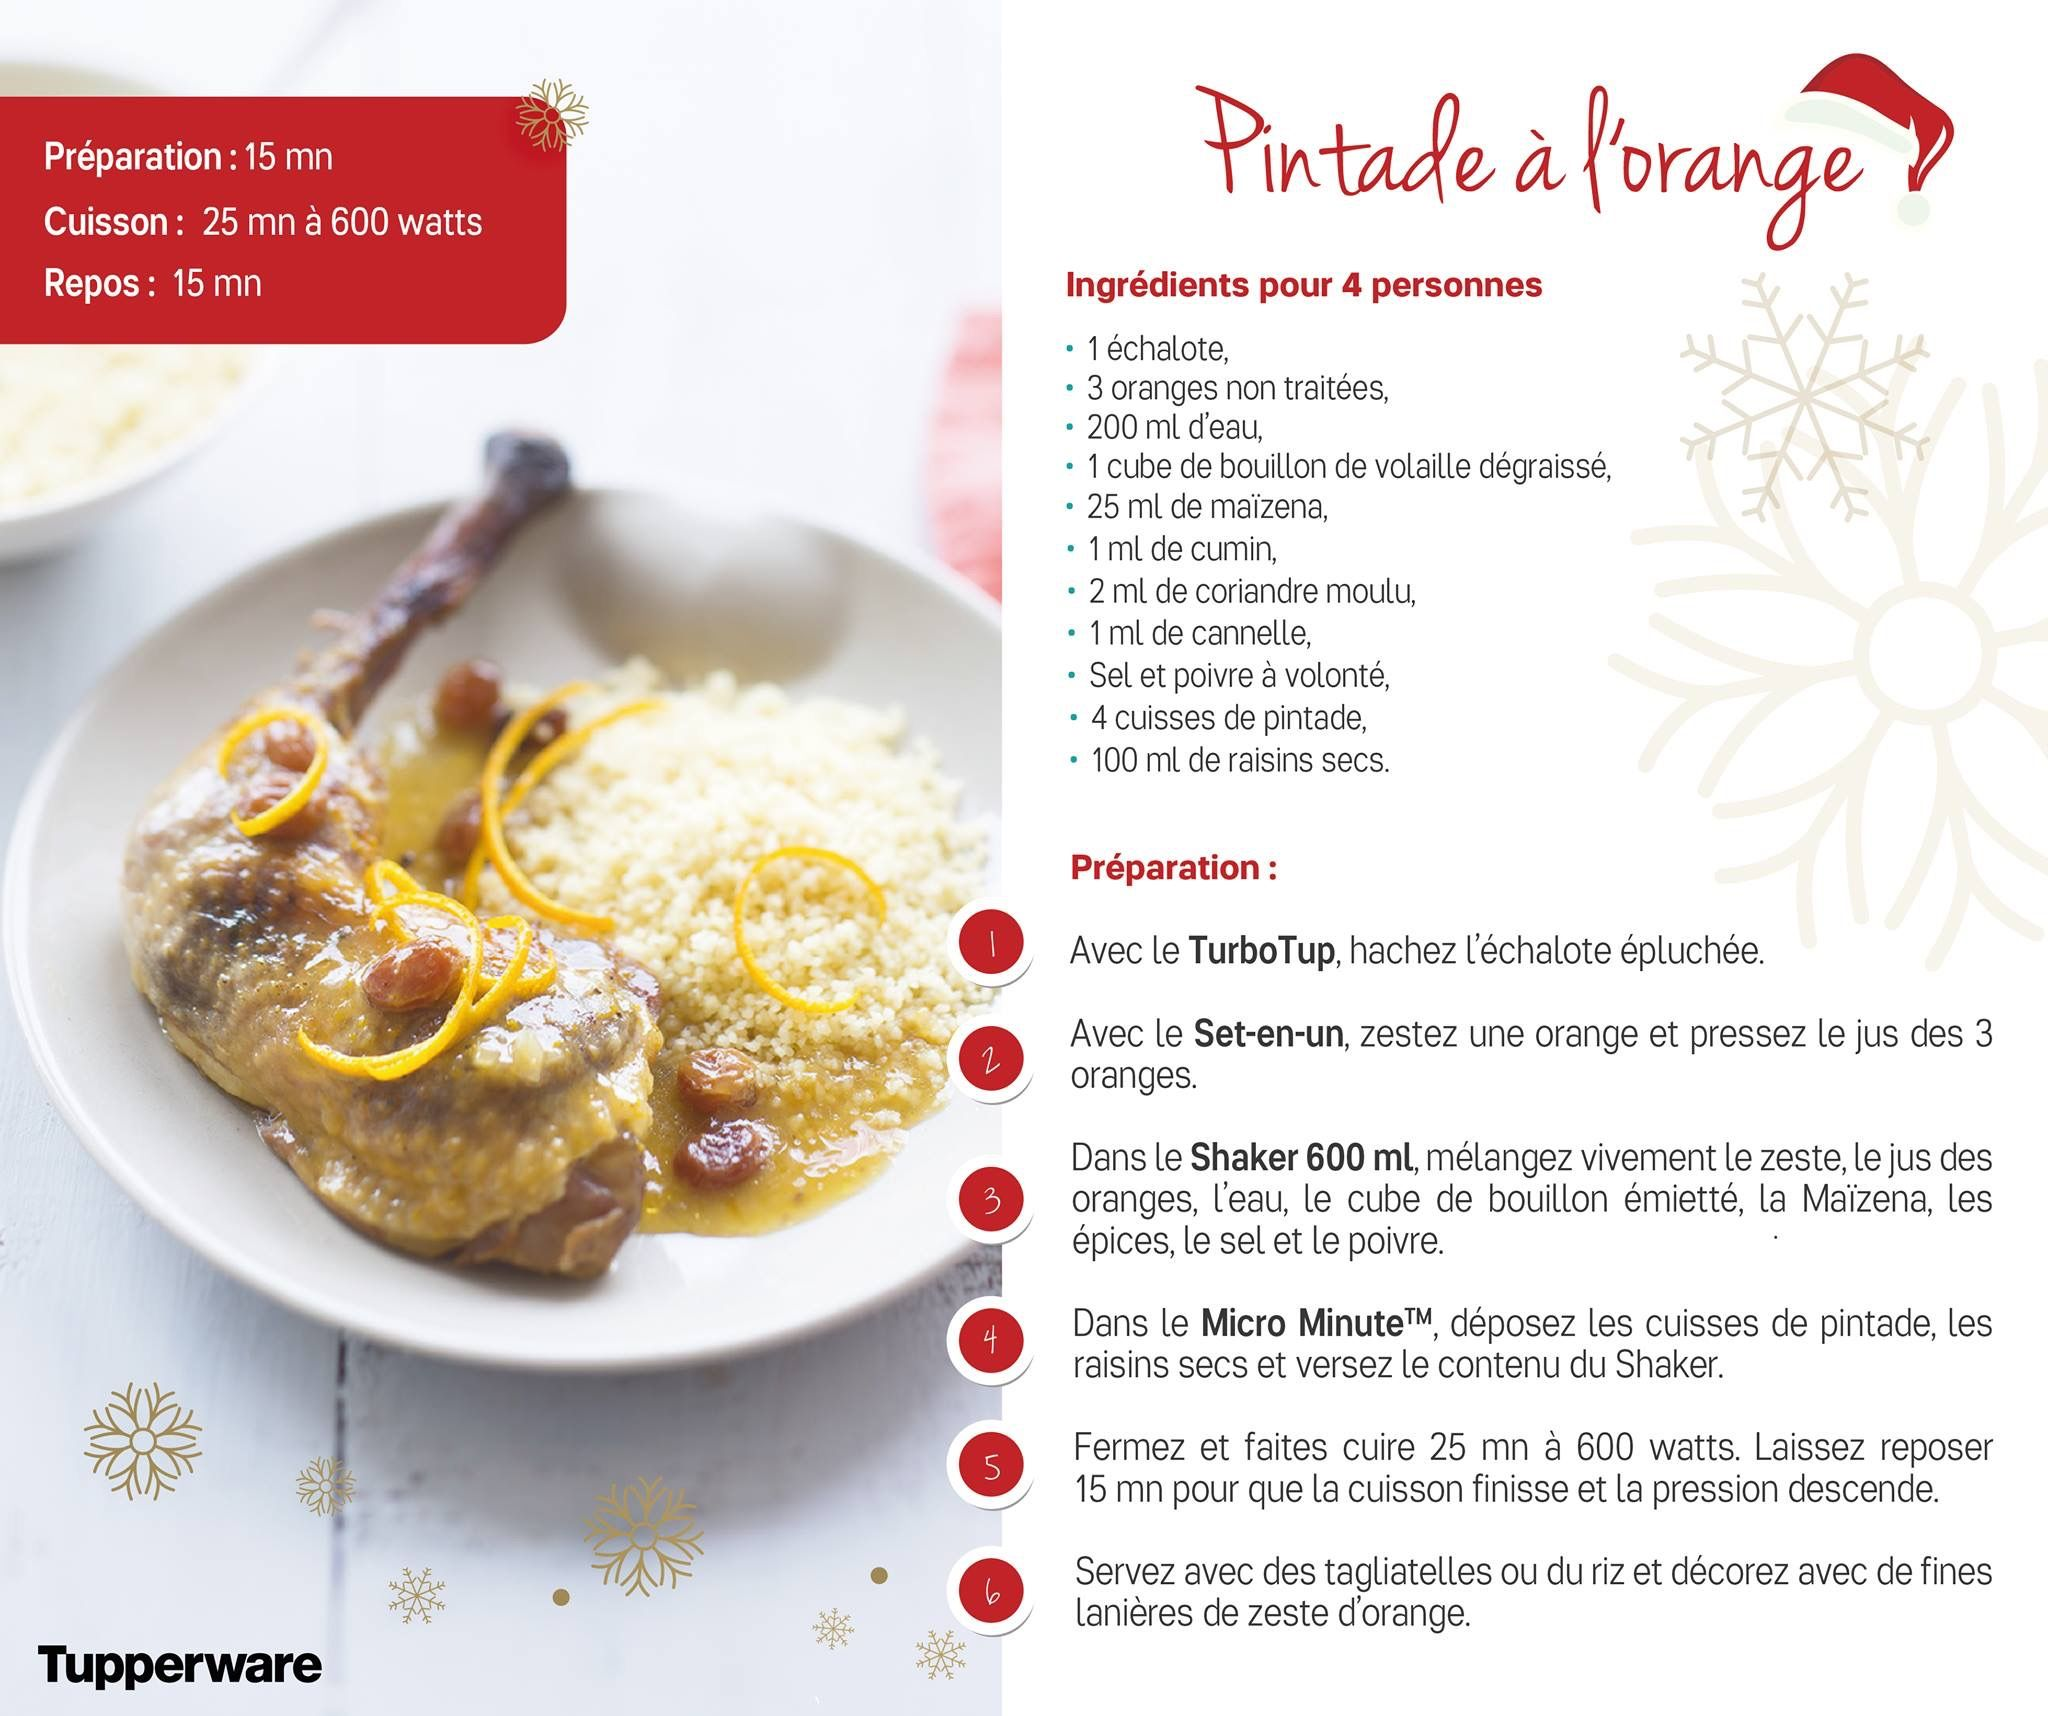 Recette de pintade l 39 orange la micro minute par tupperware volaille pinterest food - Recette cocotte minute tupperware ...